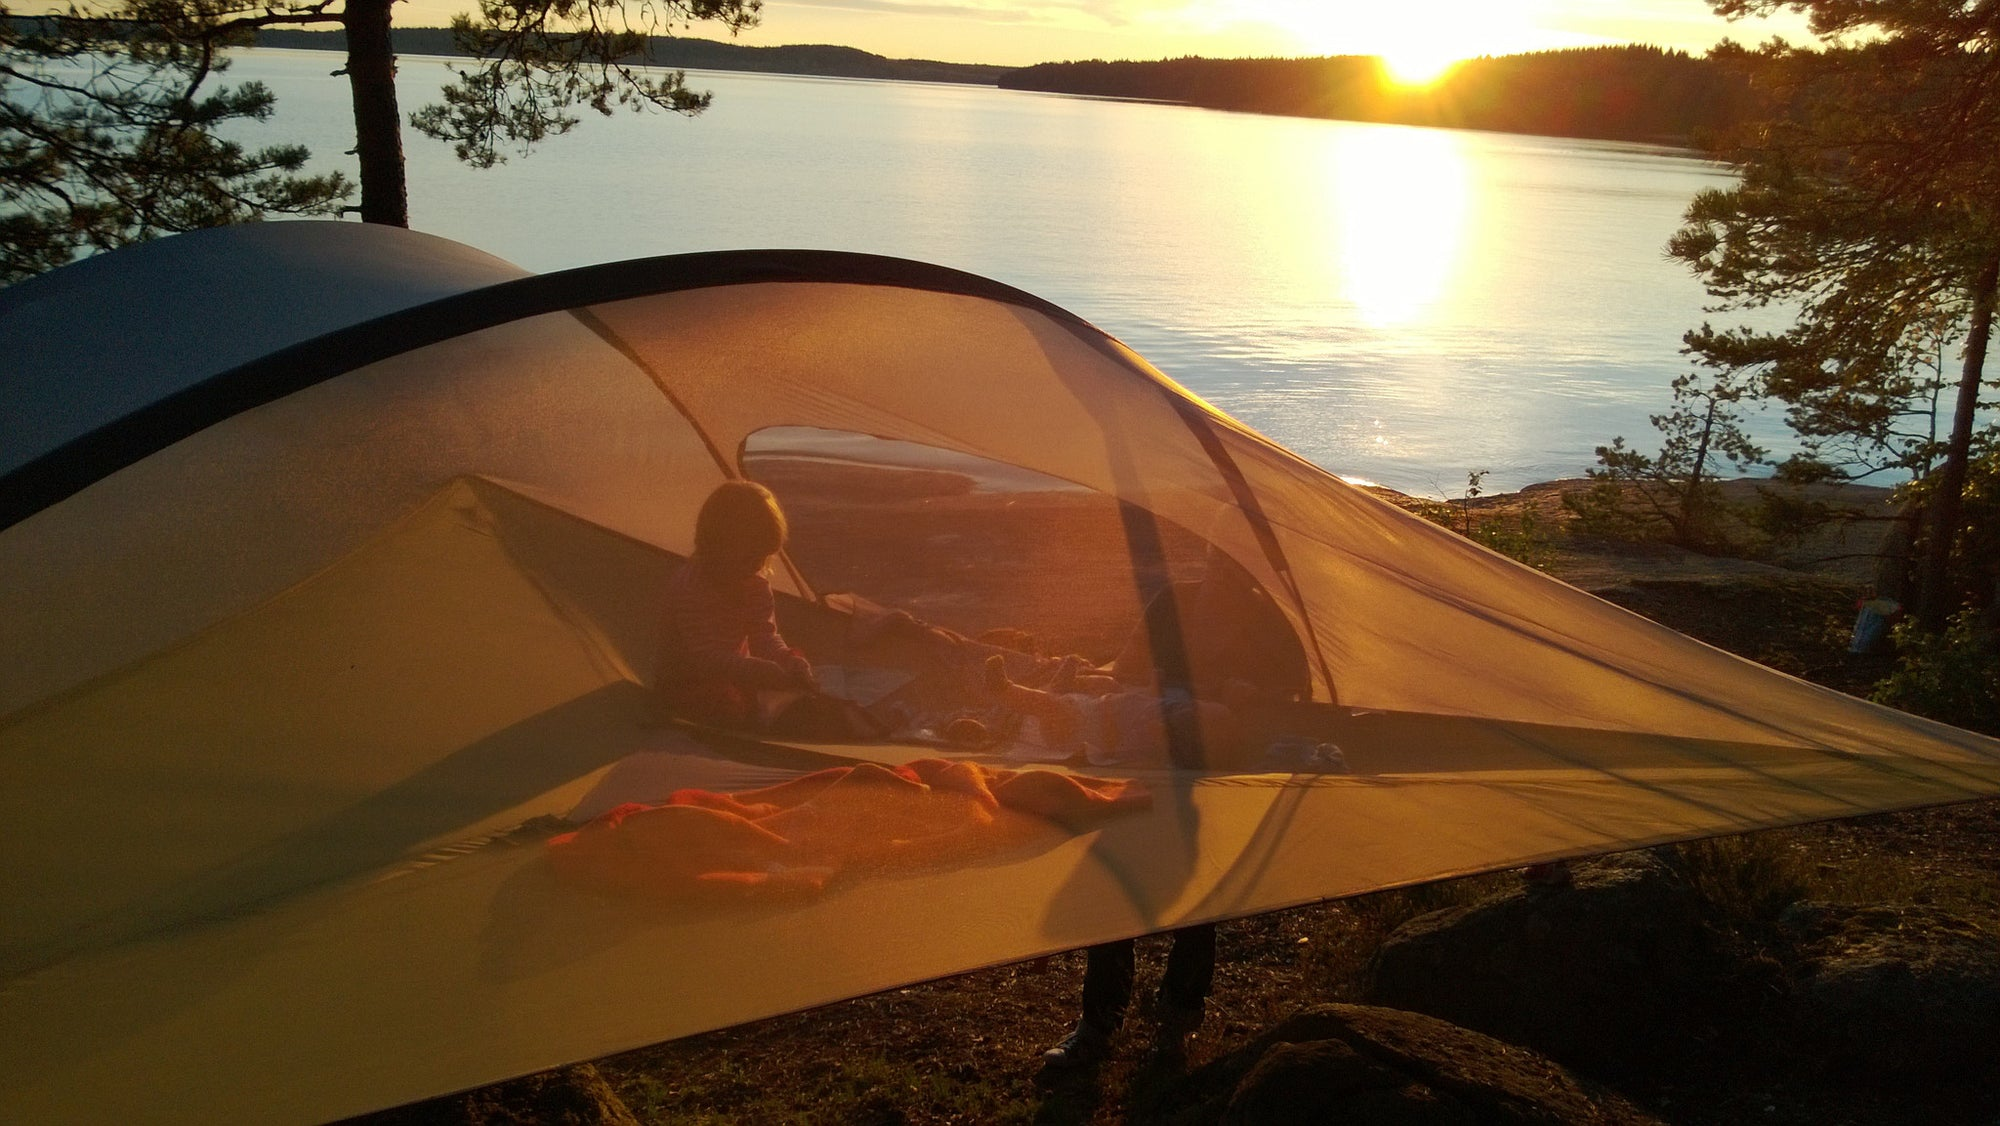 Tentsile Experience Eco-Camping Finland